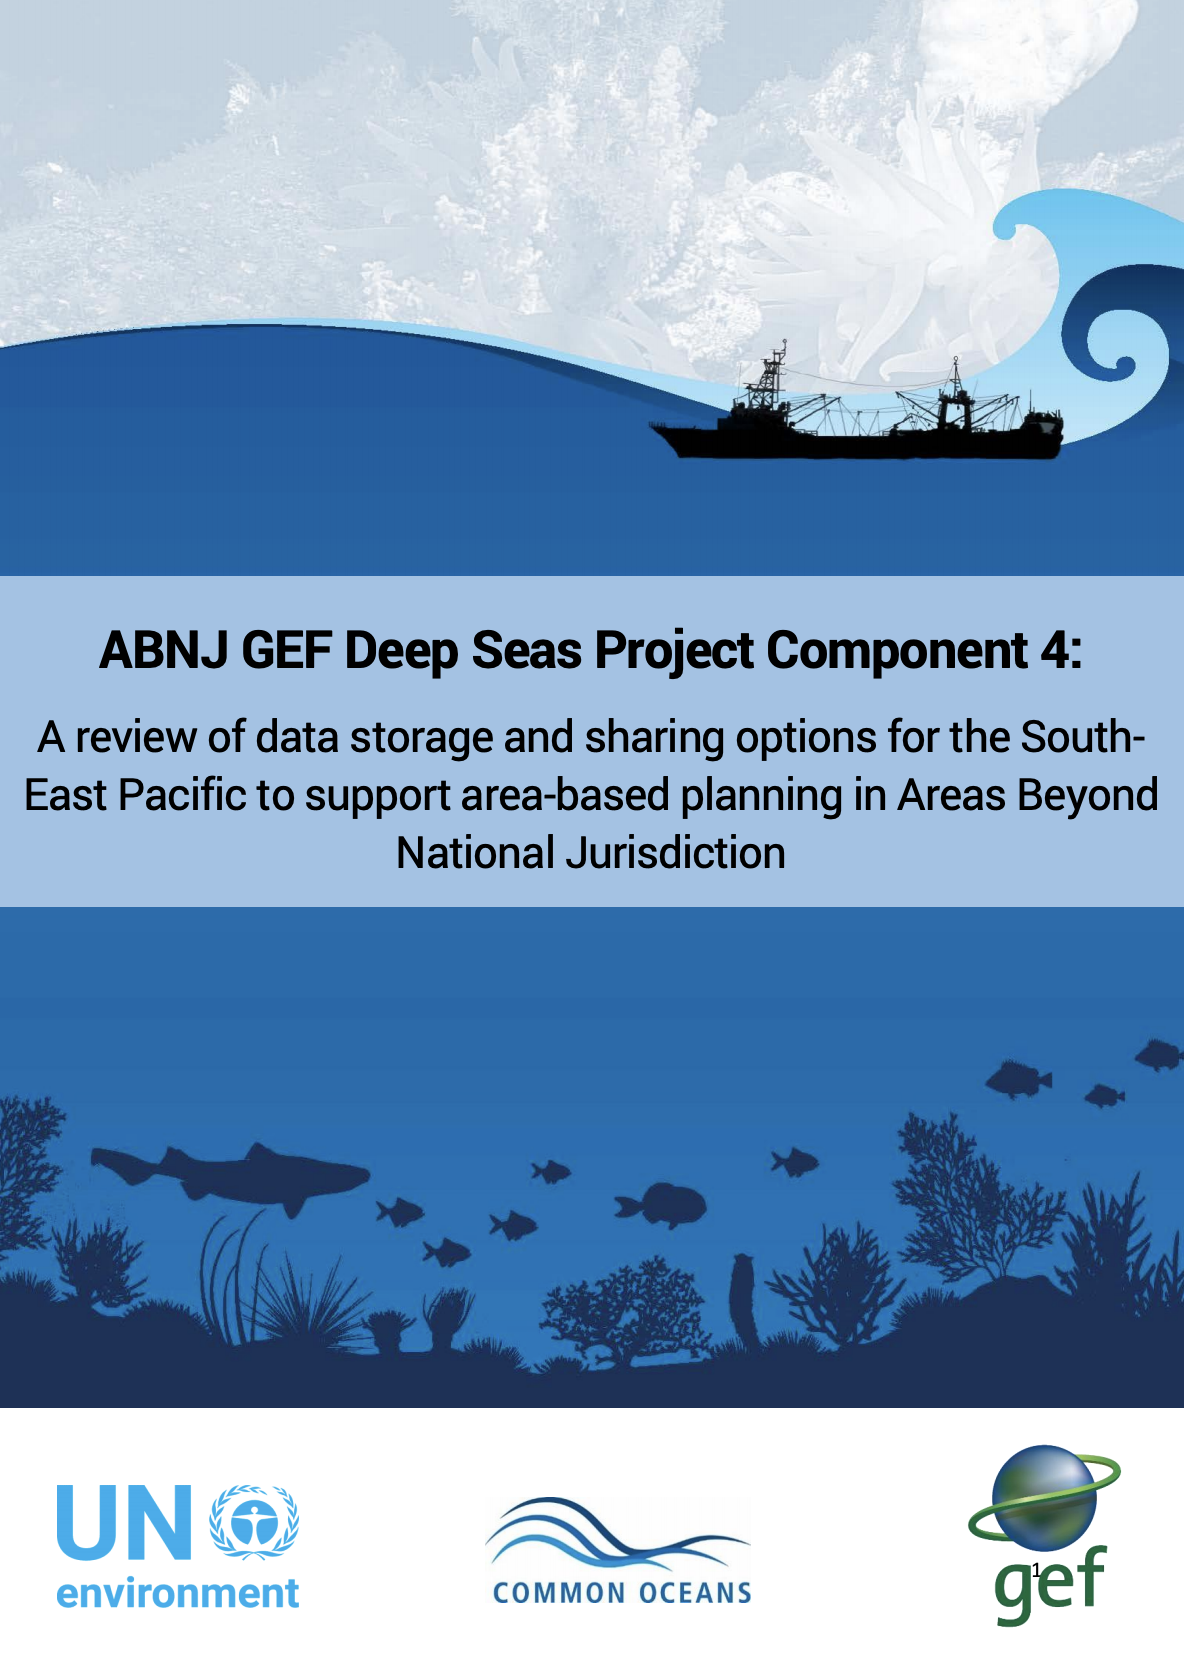 A review of data storage and sharing options for the SouthEast Pacific to support area-based planning in Areas Beyond National Jurisdiction